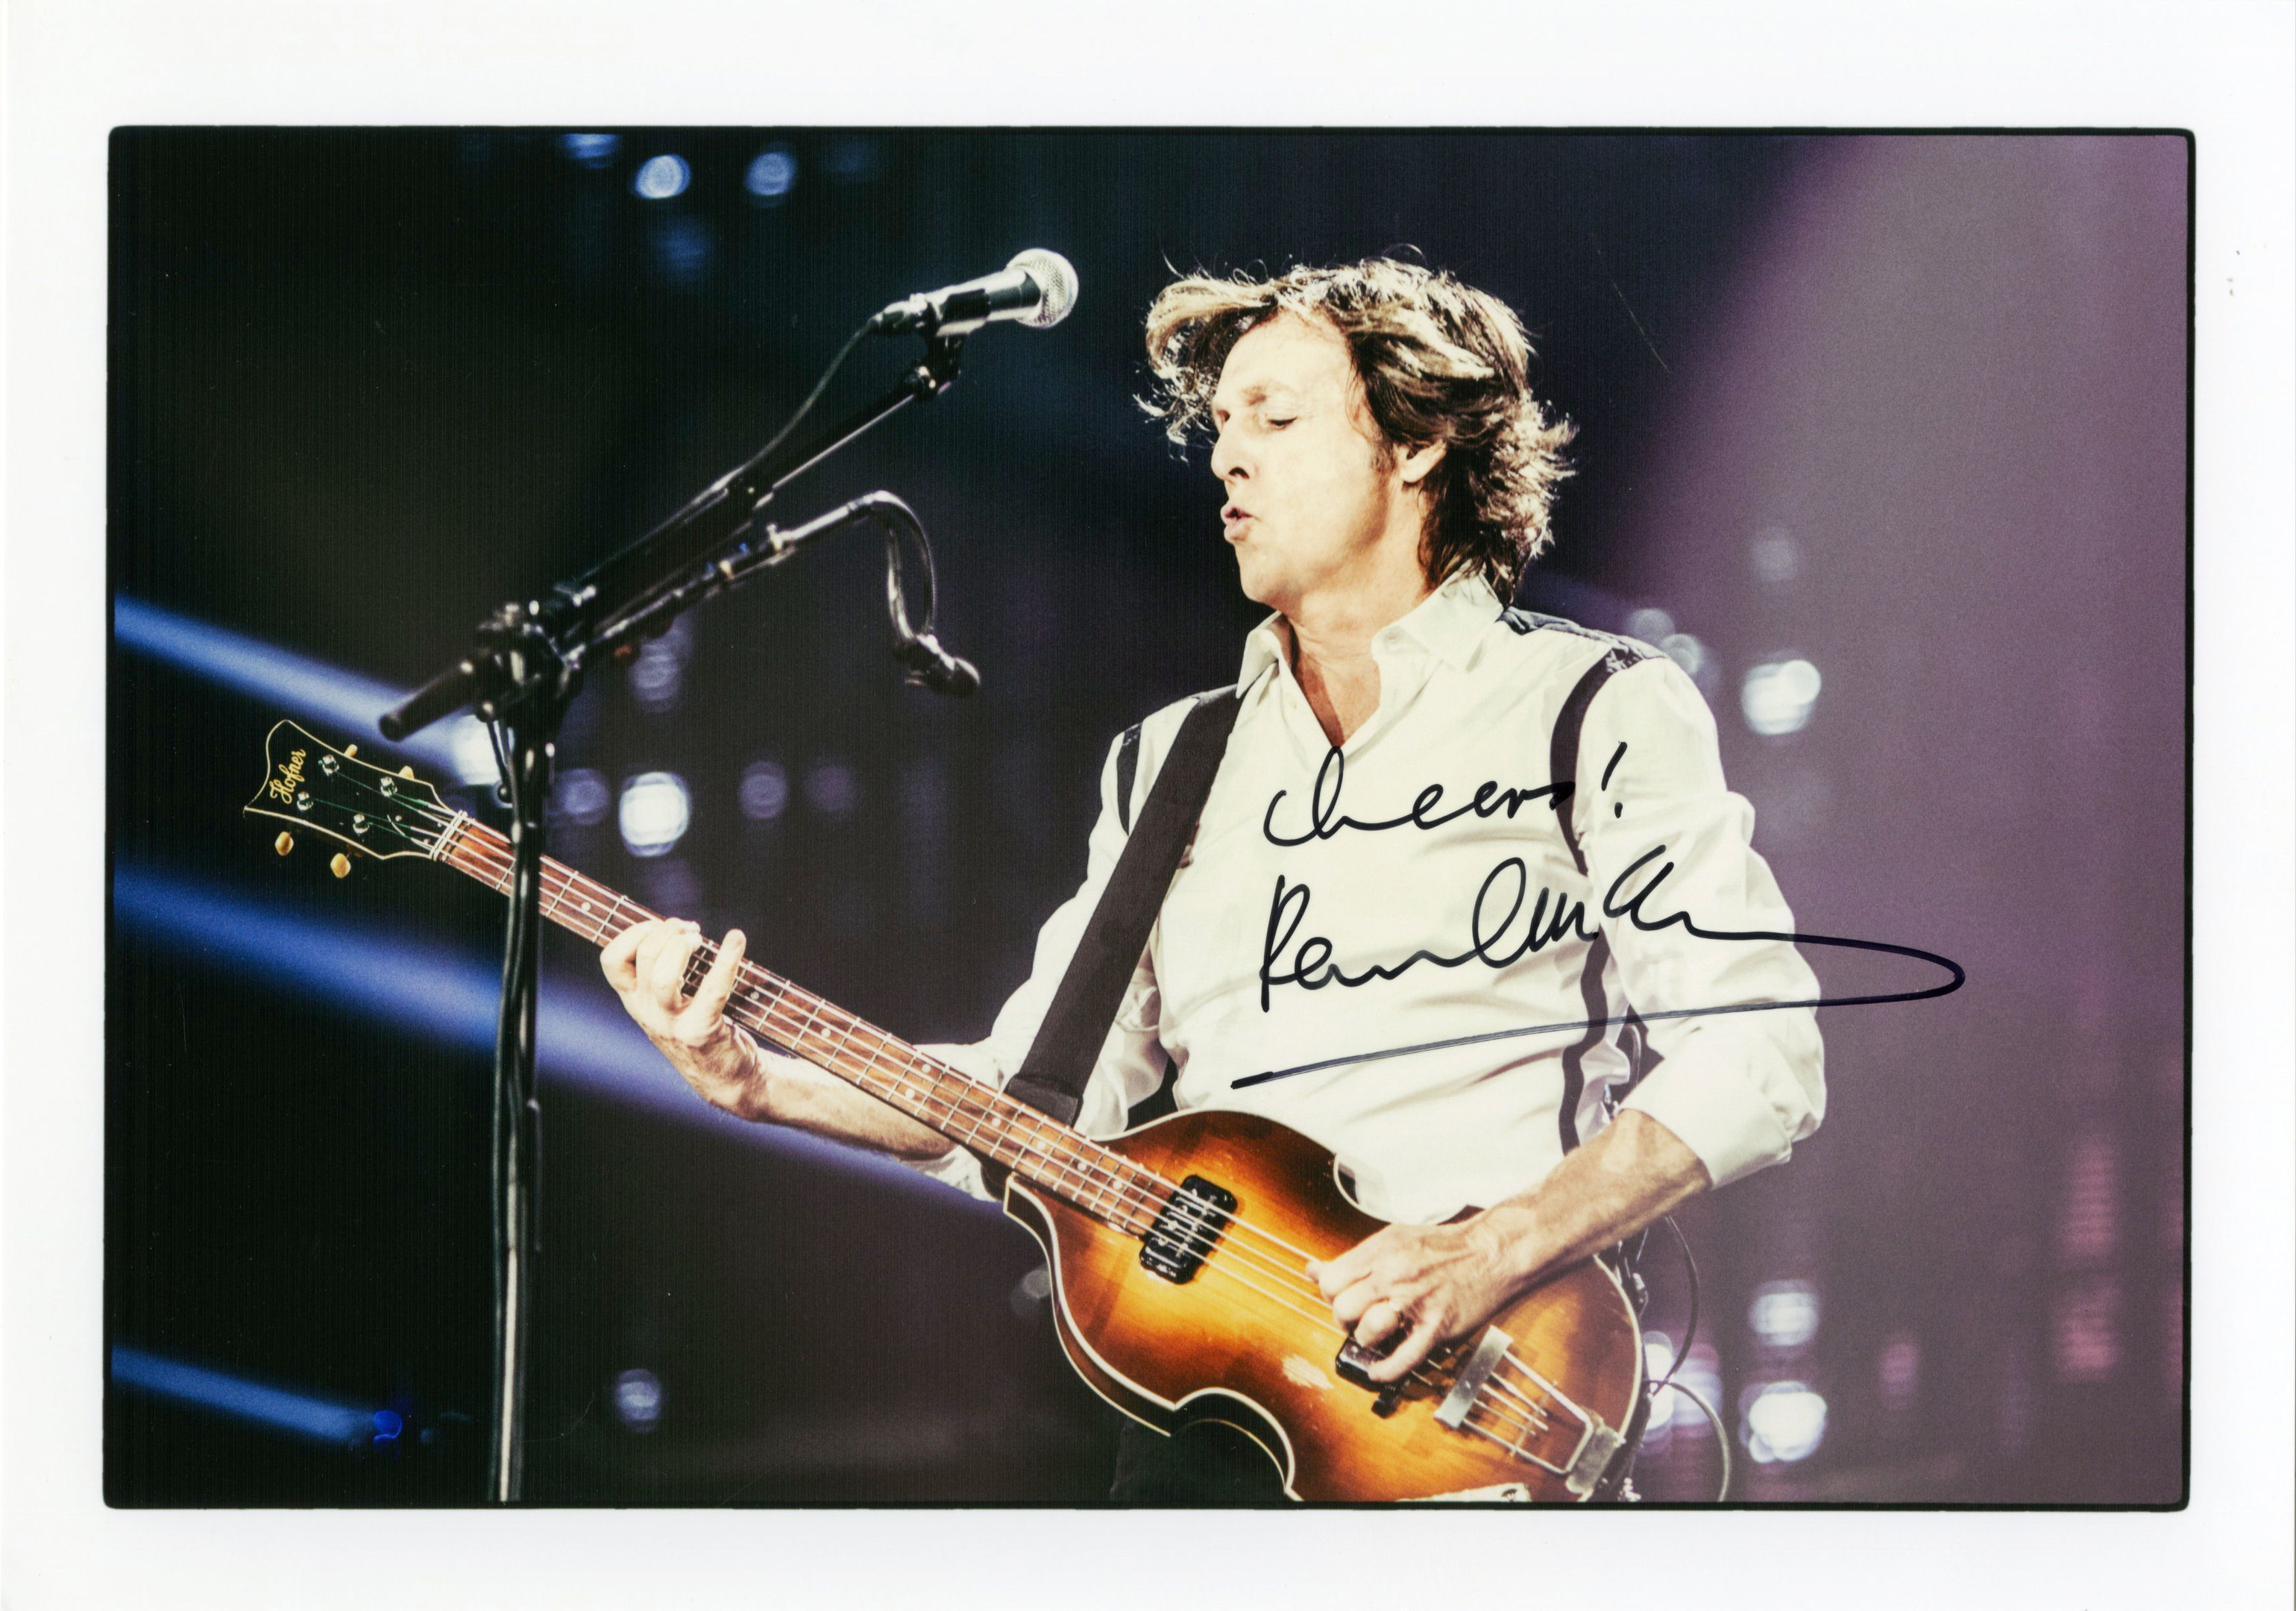 An autographed photograph of Sir Paul McCartney which the former Beatle has donated to raise funds for Kintyre Seasports. (Tracks Ltd /PA Wire)